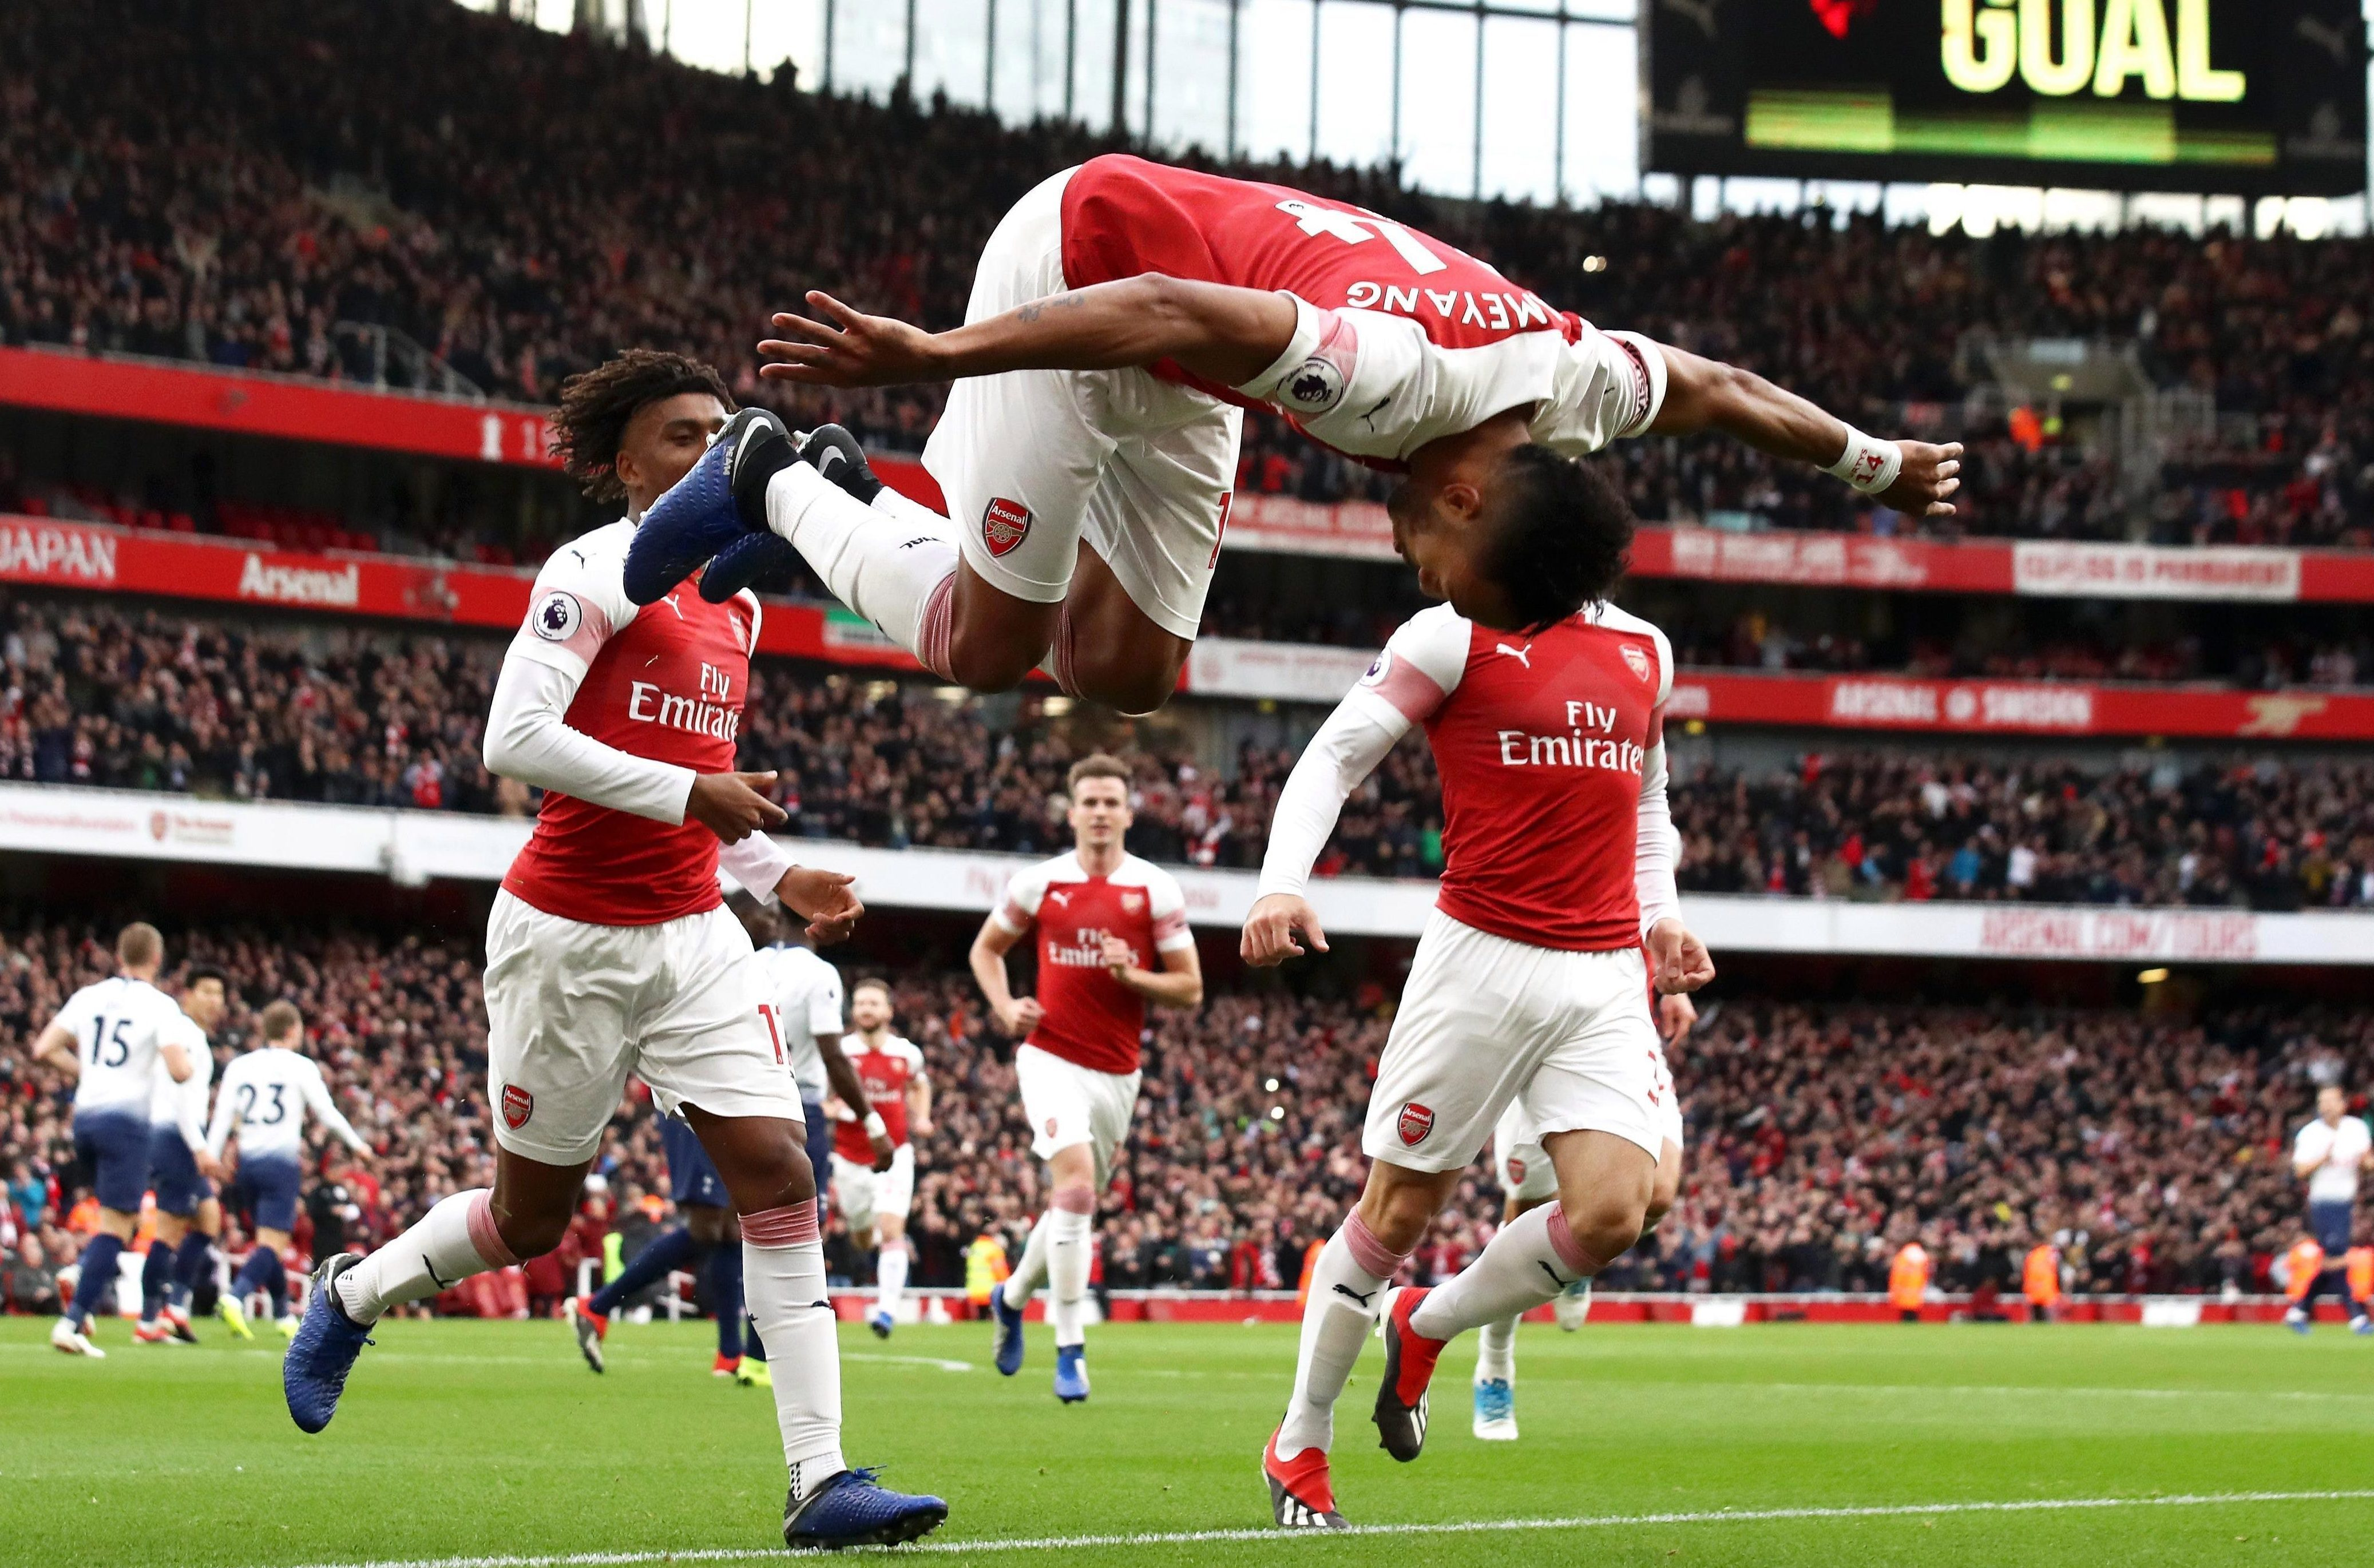 Premier League highlights: Arsenal demolish Spurs in derby, Pickford's error hands Liverpool outrageous winner and Chelsea ease past Fulham